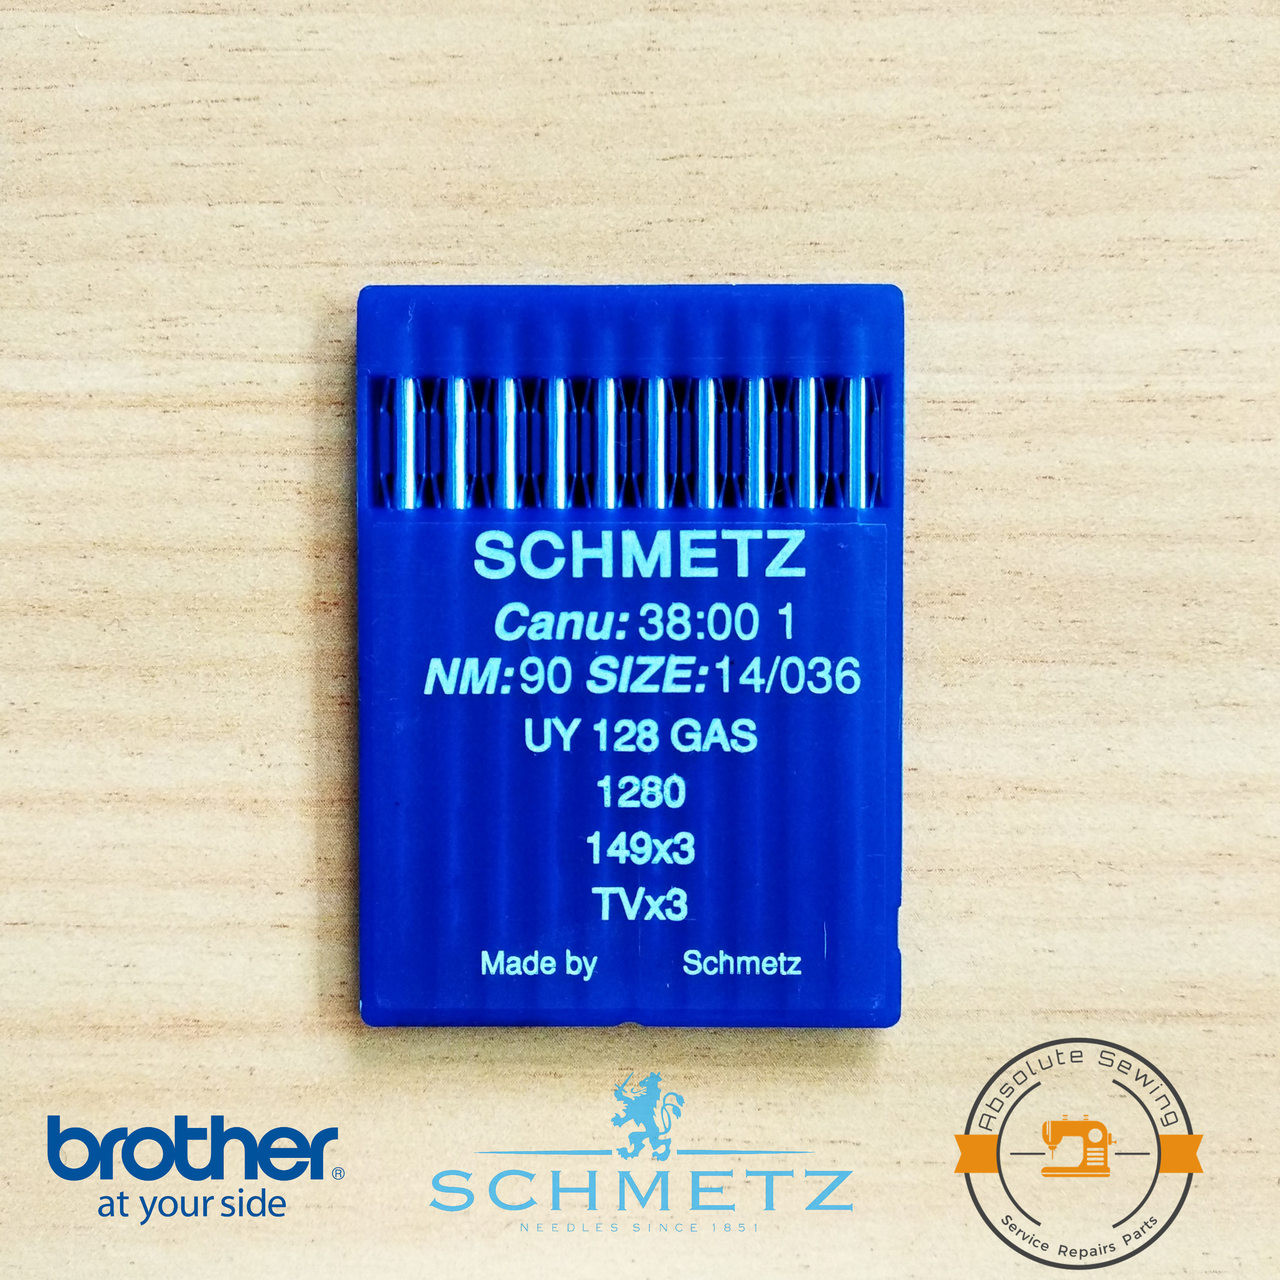 SCHMETZ TVX3 SES UY128 GAS SES NM:90 SIZE14//036 INDUSTRIAL SEWING MACHINE NEEDLE